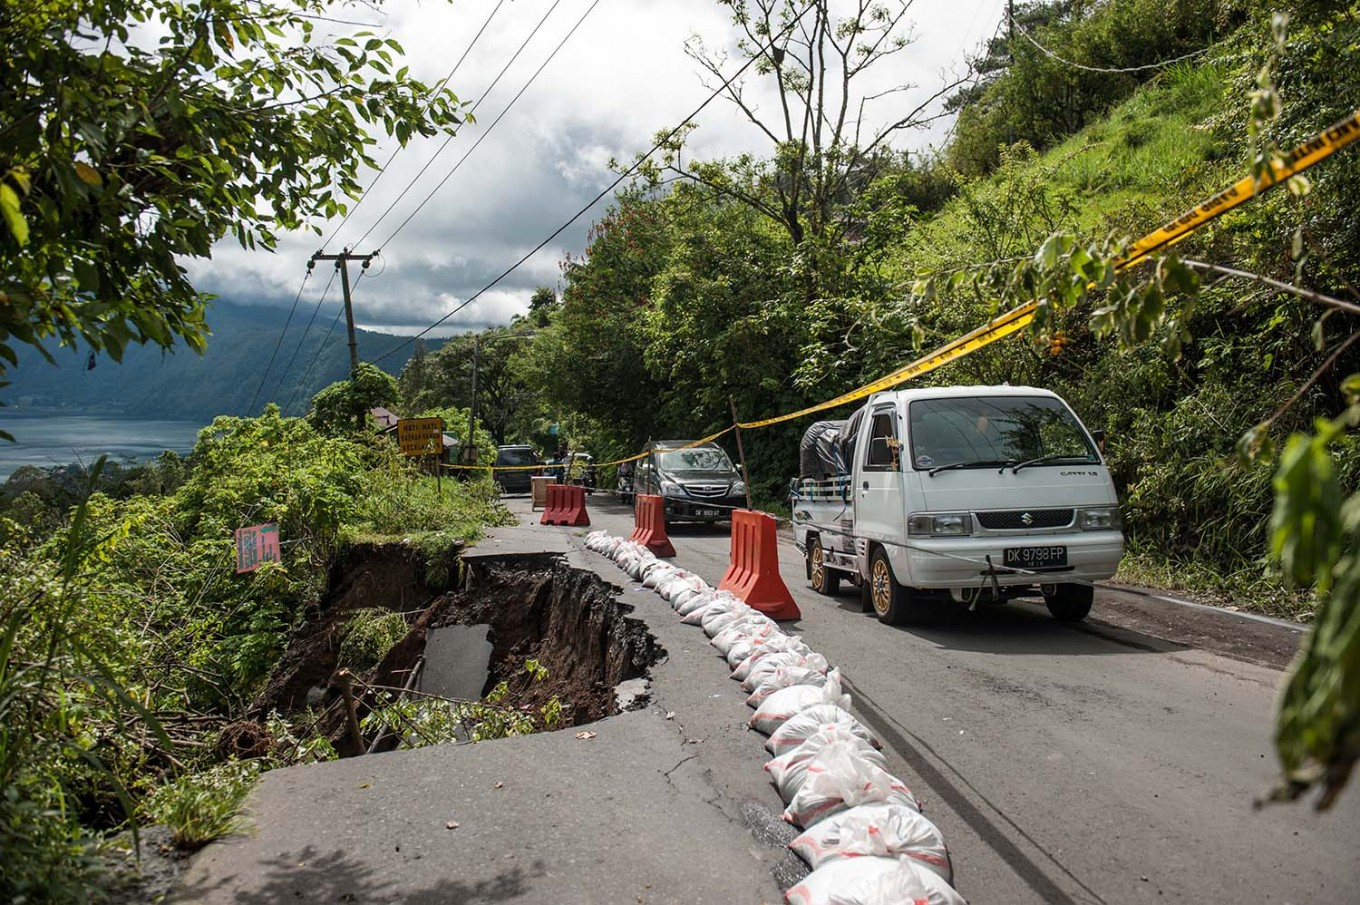 Vehicles pass a road heading to Songan village that was partially affected by a landslide on Monday, February 13, 2017. JP/ Anggara Mahendra